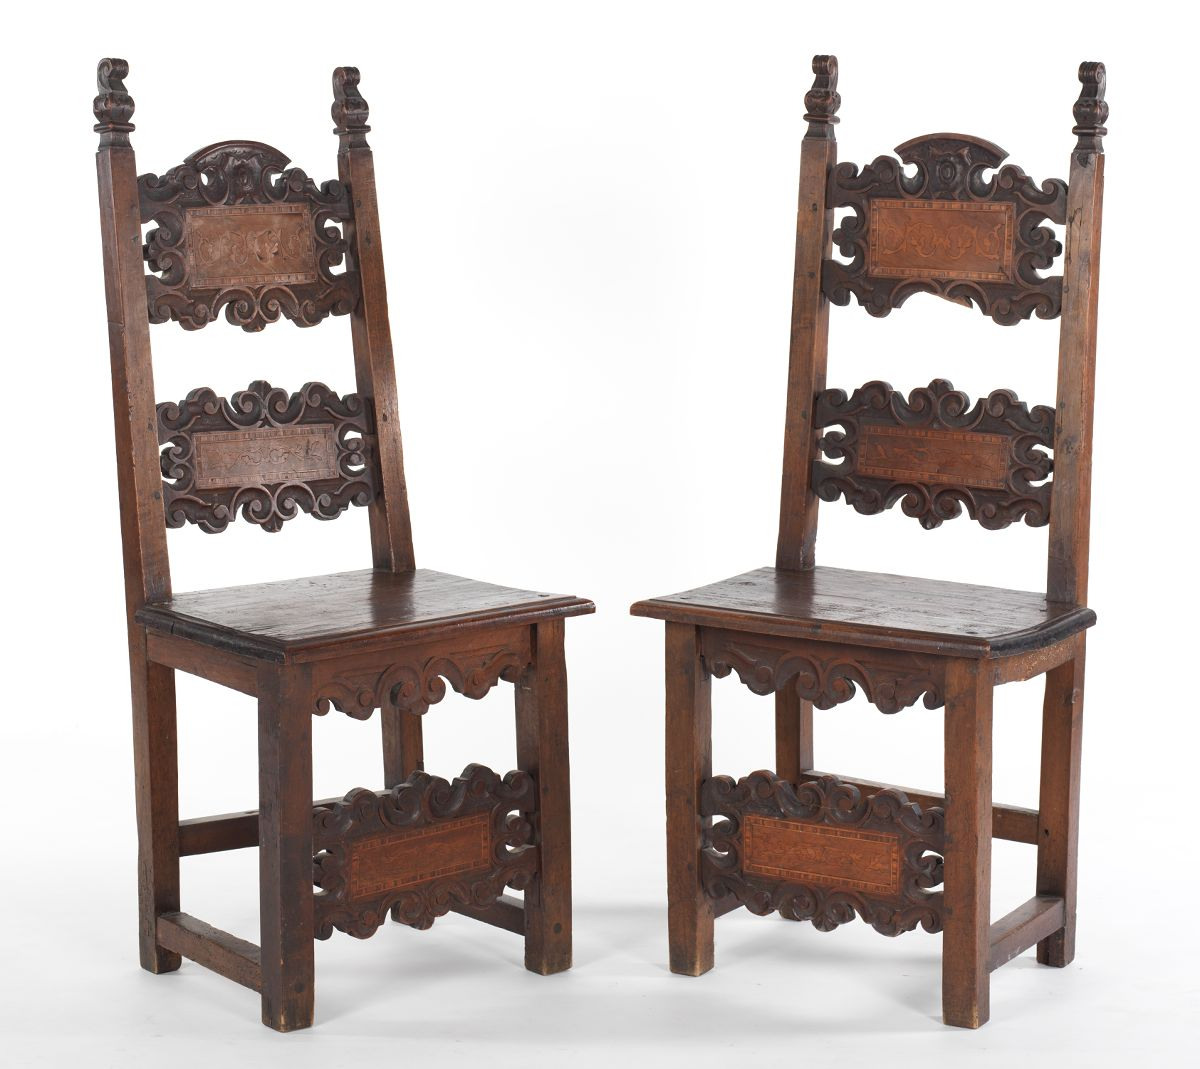 Chair table 17th century - A Pair Of Spanish Walnut Marquetry Side Chairs Late 17th Century